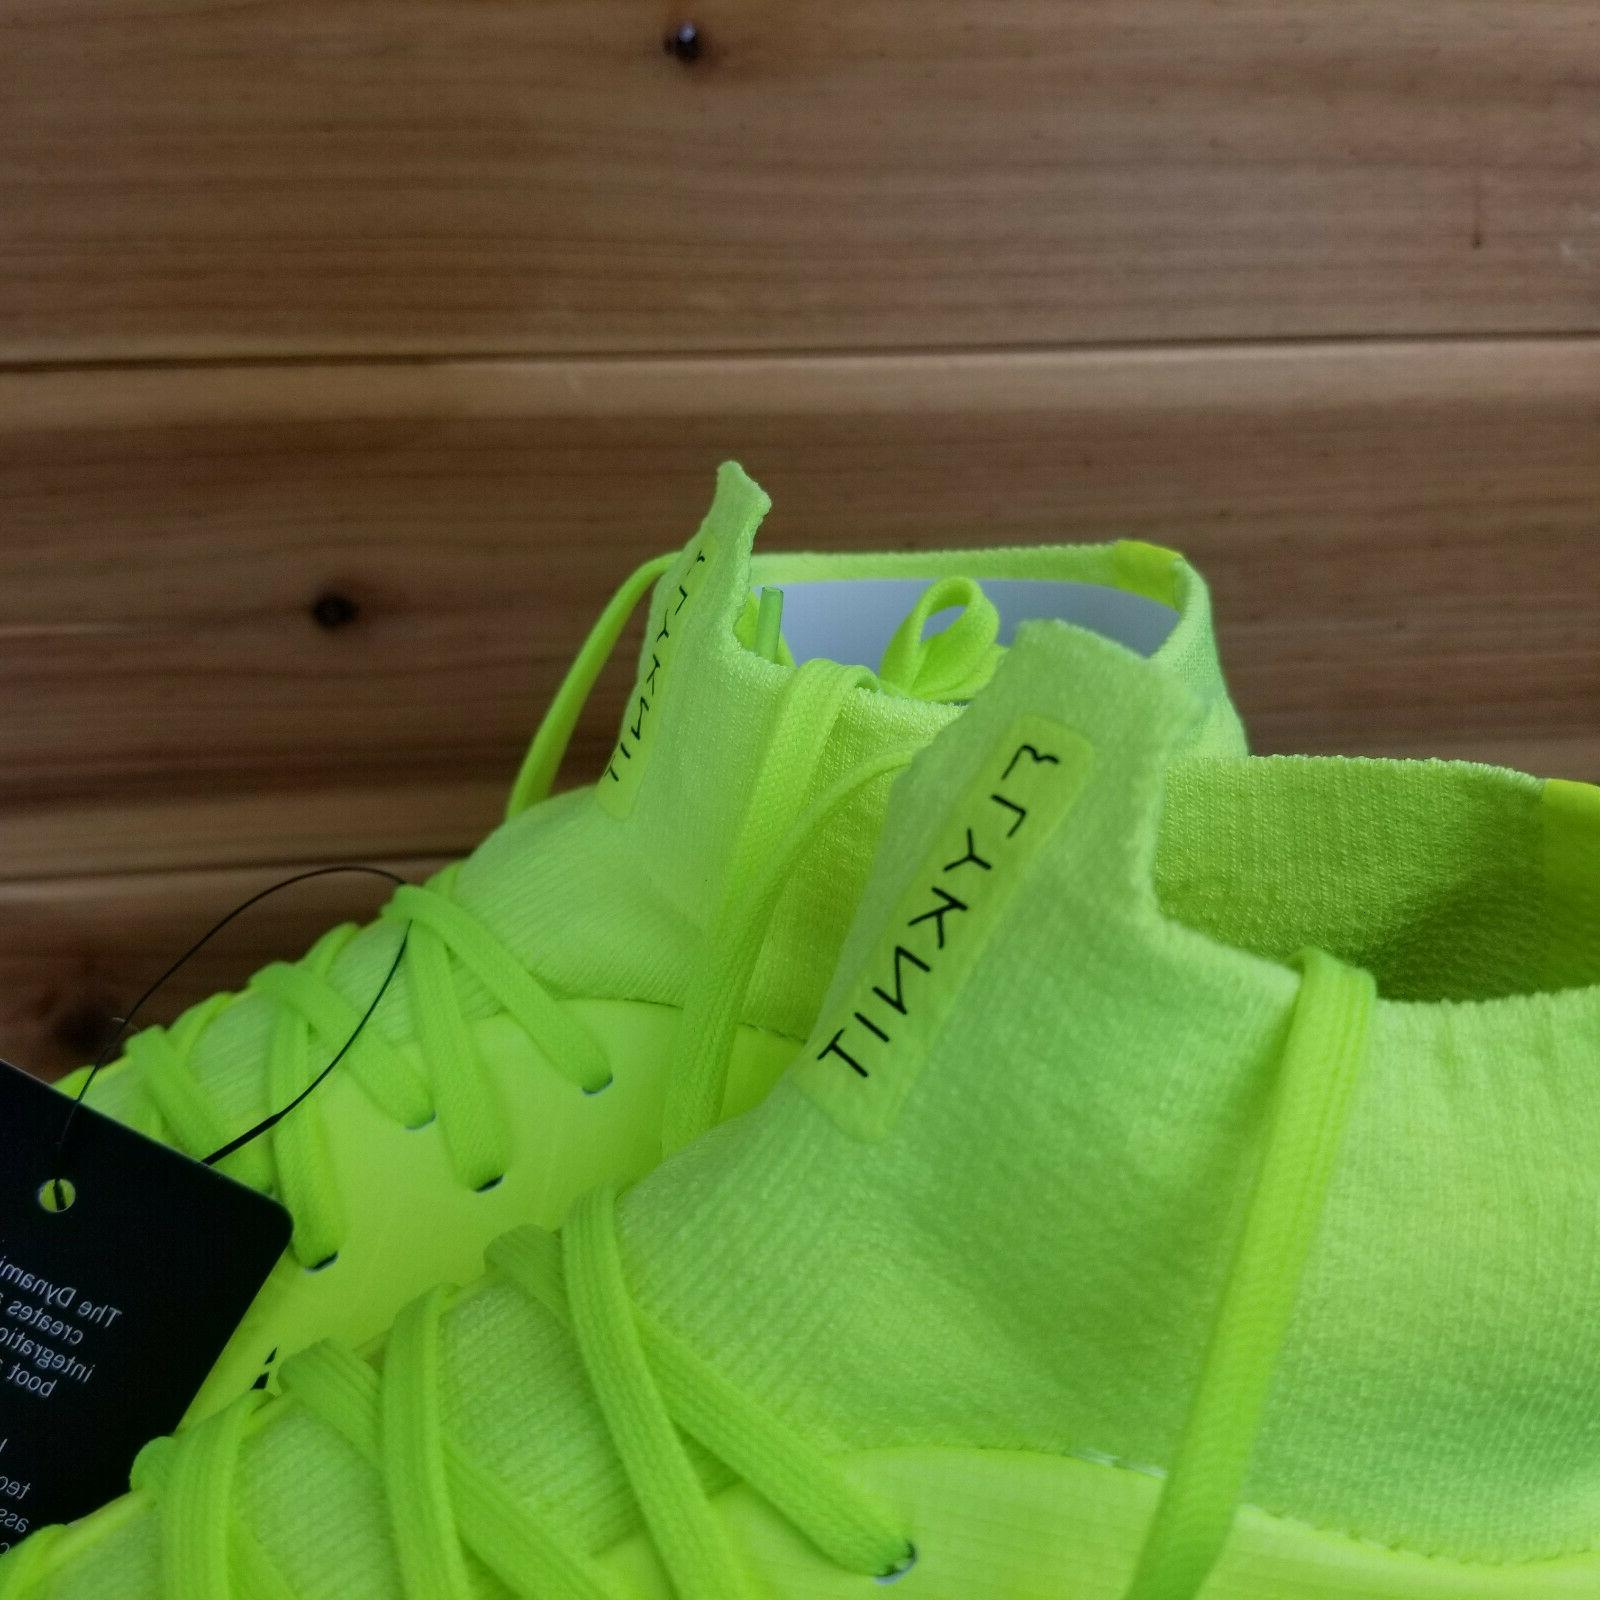 Nike Mercurial Superfly 6 Pro Volt